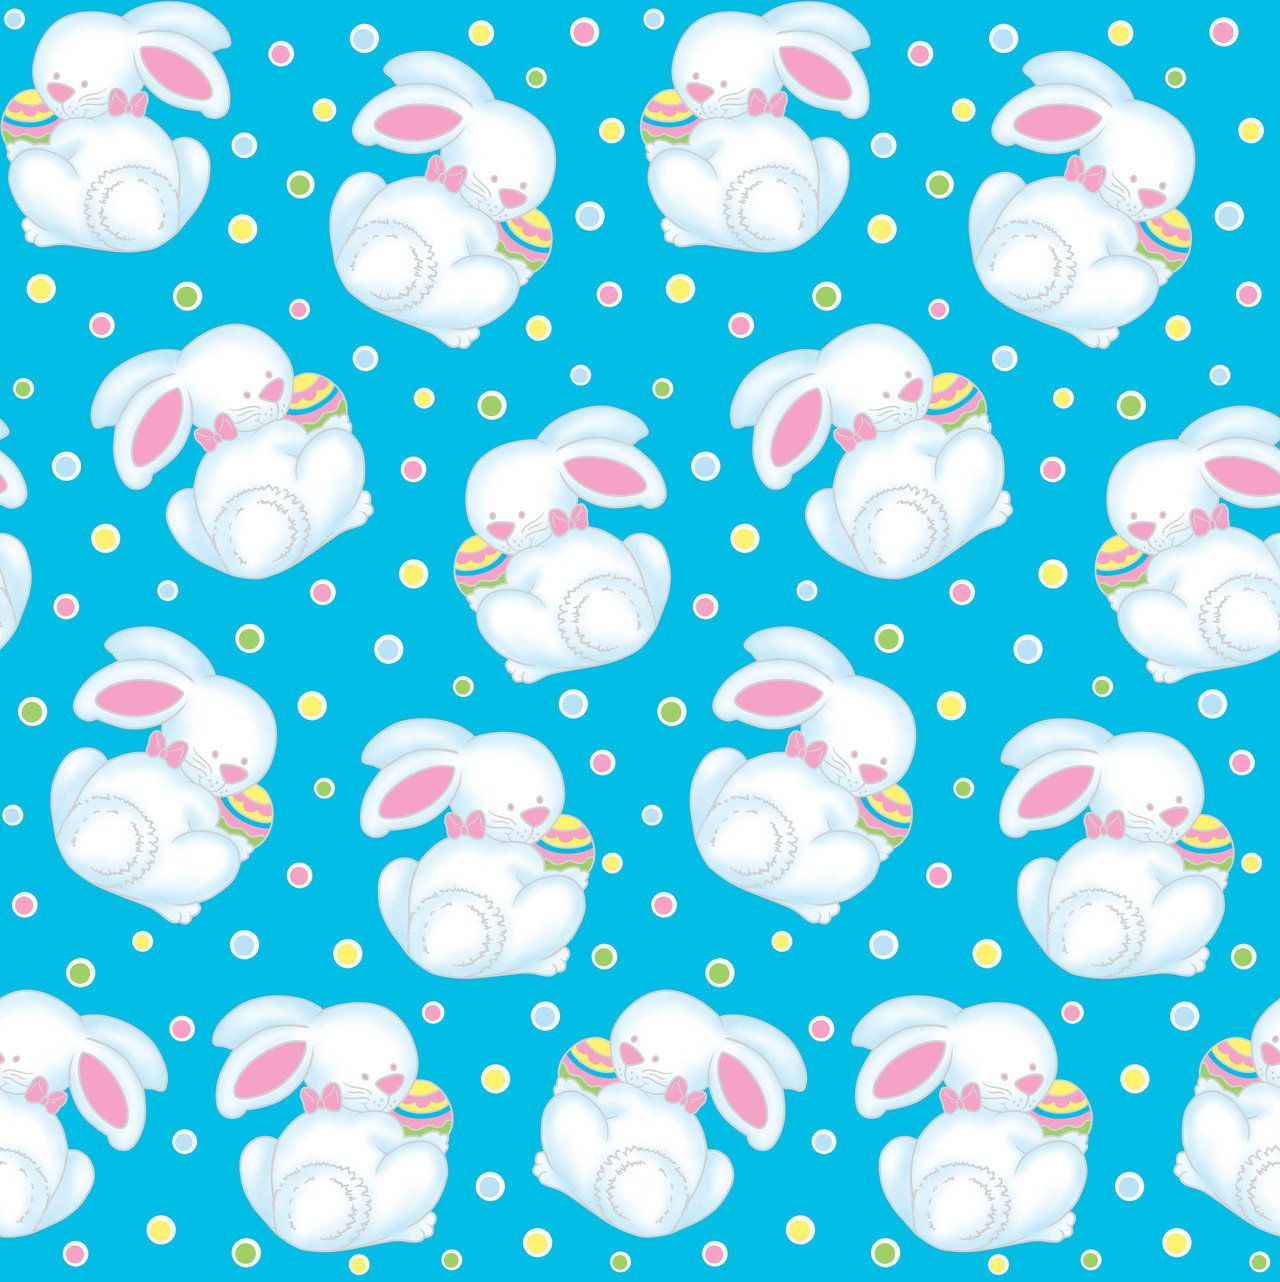 Easter Spring Seamless Print Pattern 2 By Doncabanza On